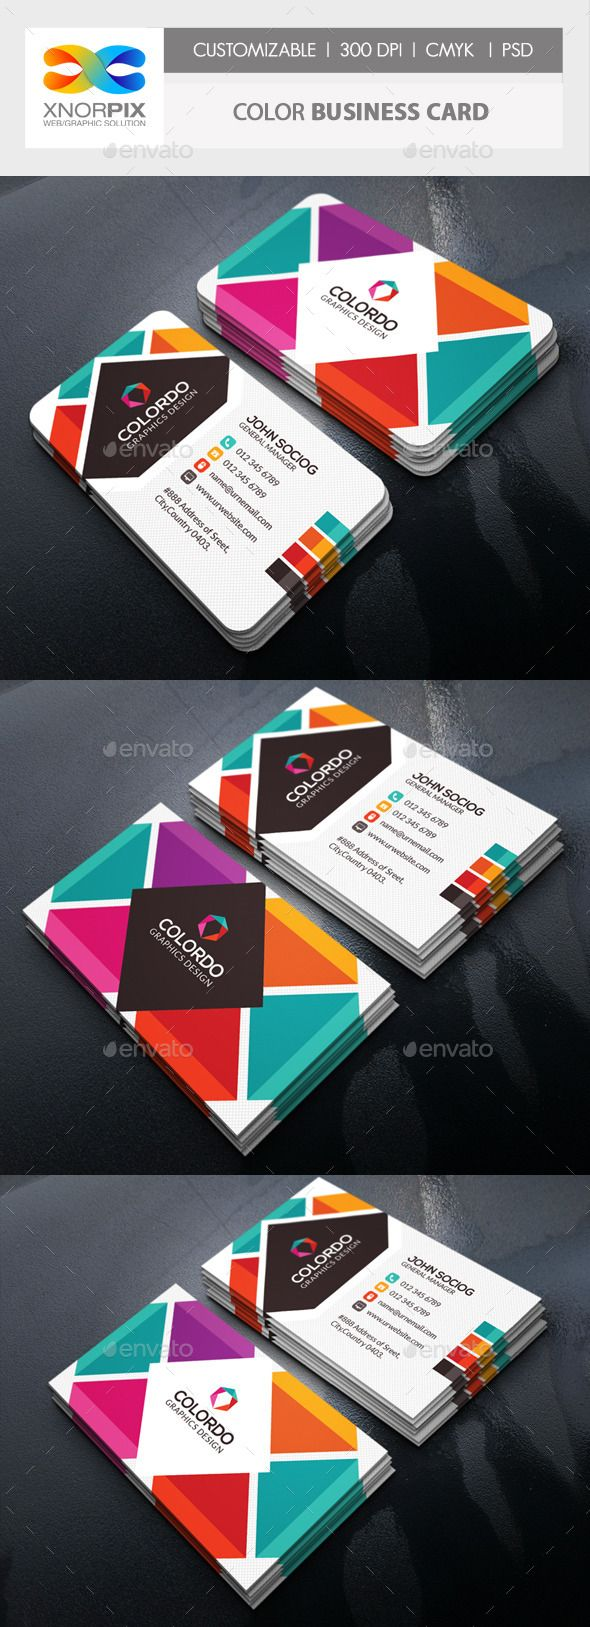 Color business card template psd design download http color business card template psd design download httpgraphicriver reheart Image collections